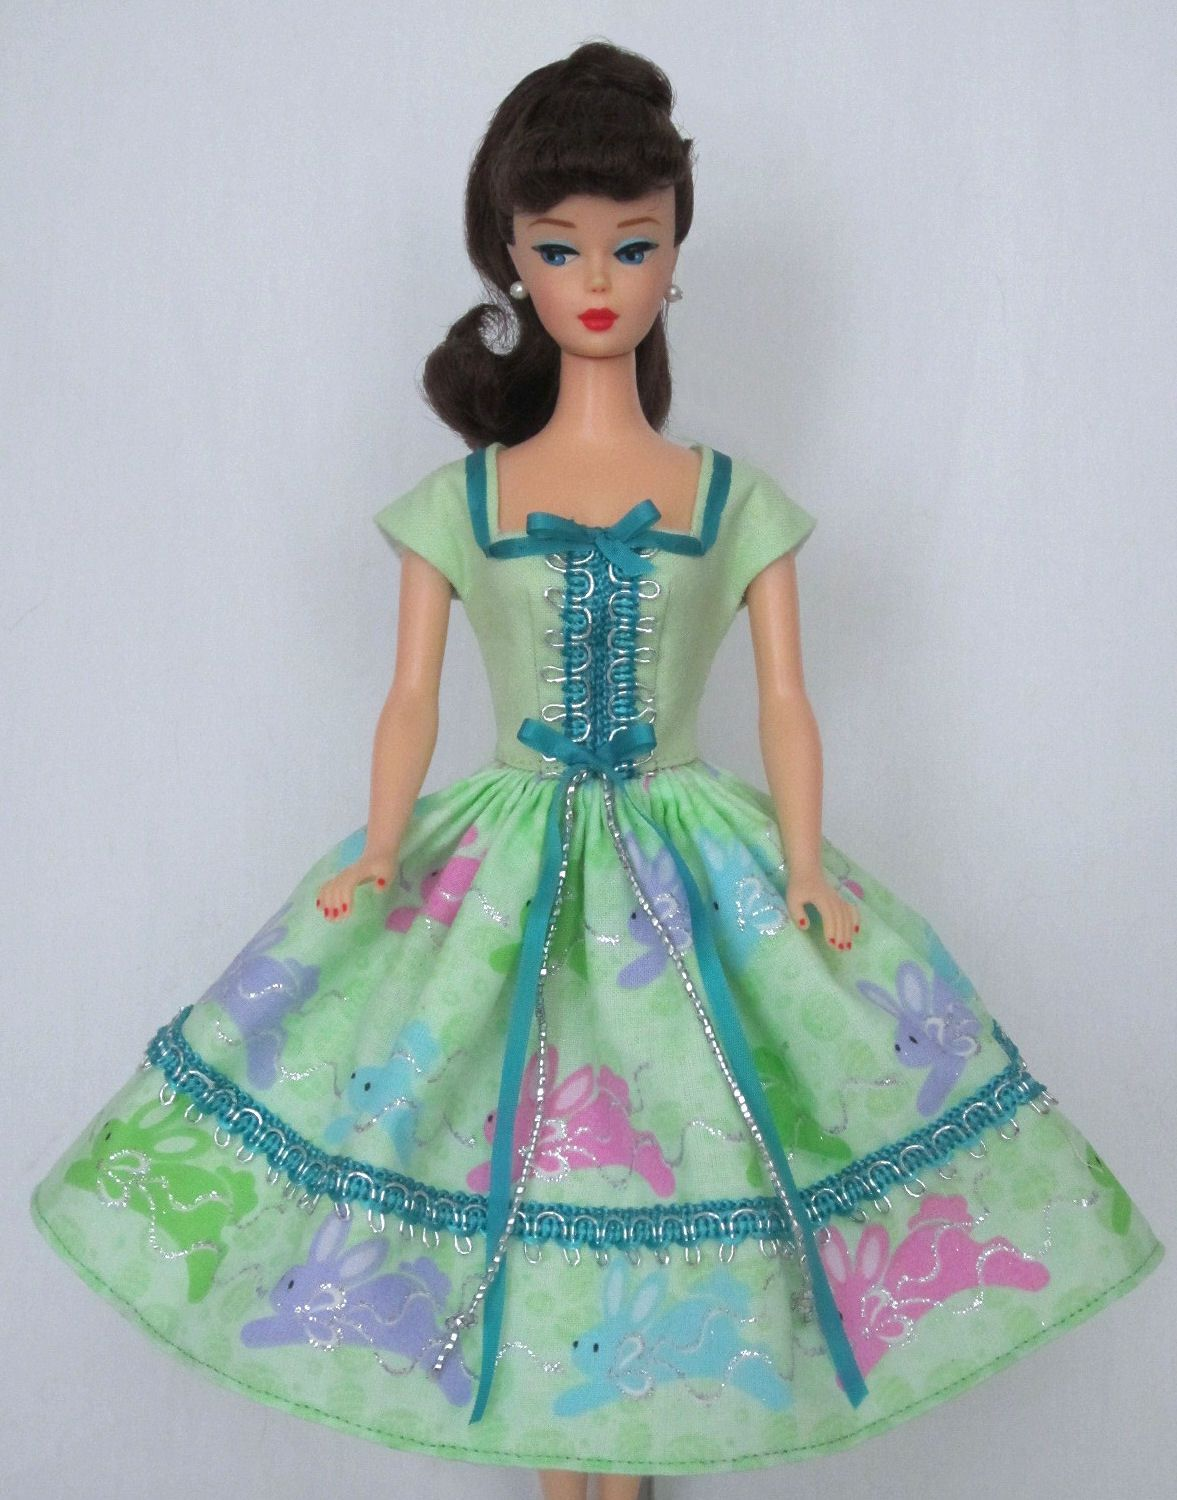 Hop To It - Vintage Barbie Doll Dress Reproduction Barbie Clothes on eBay http://www.ebay.com/usr/fanfare1901?_trksid=p2047675.l2559